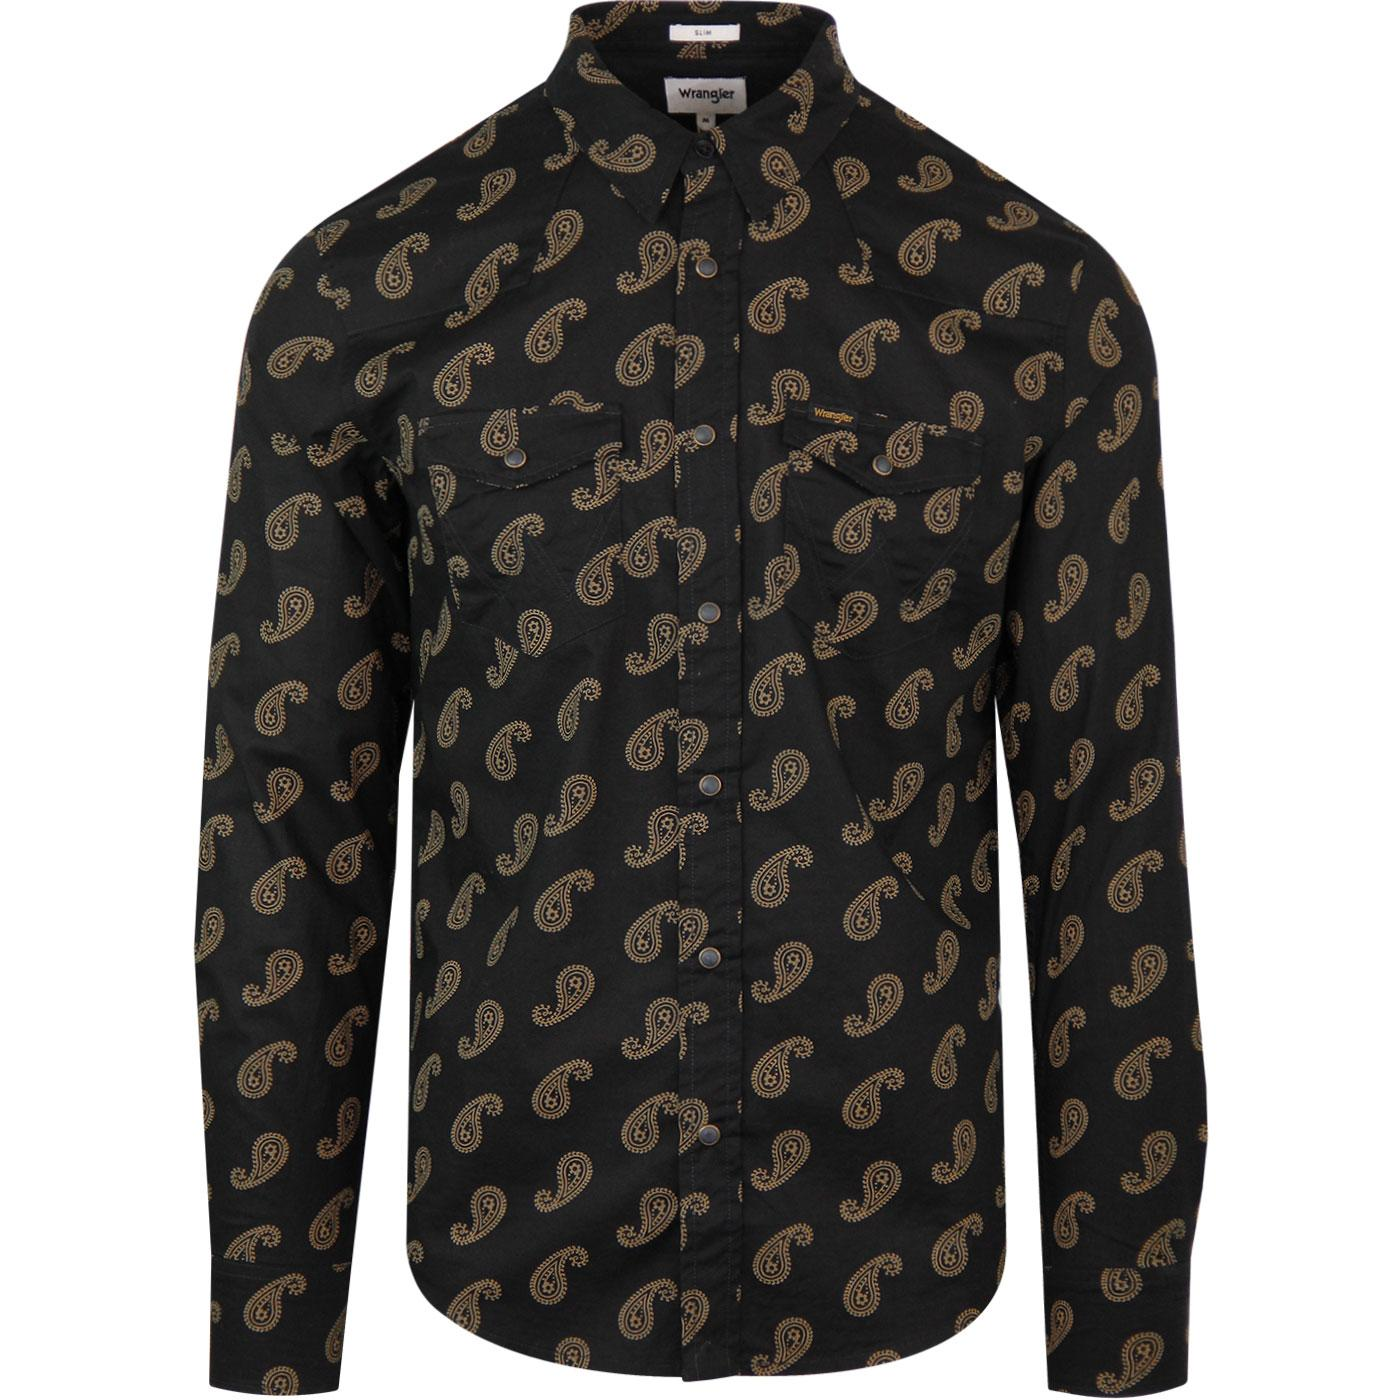 Paisley WRANGLER Retro Western Shirt In Black